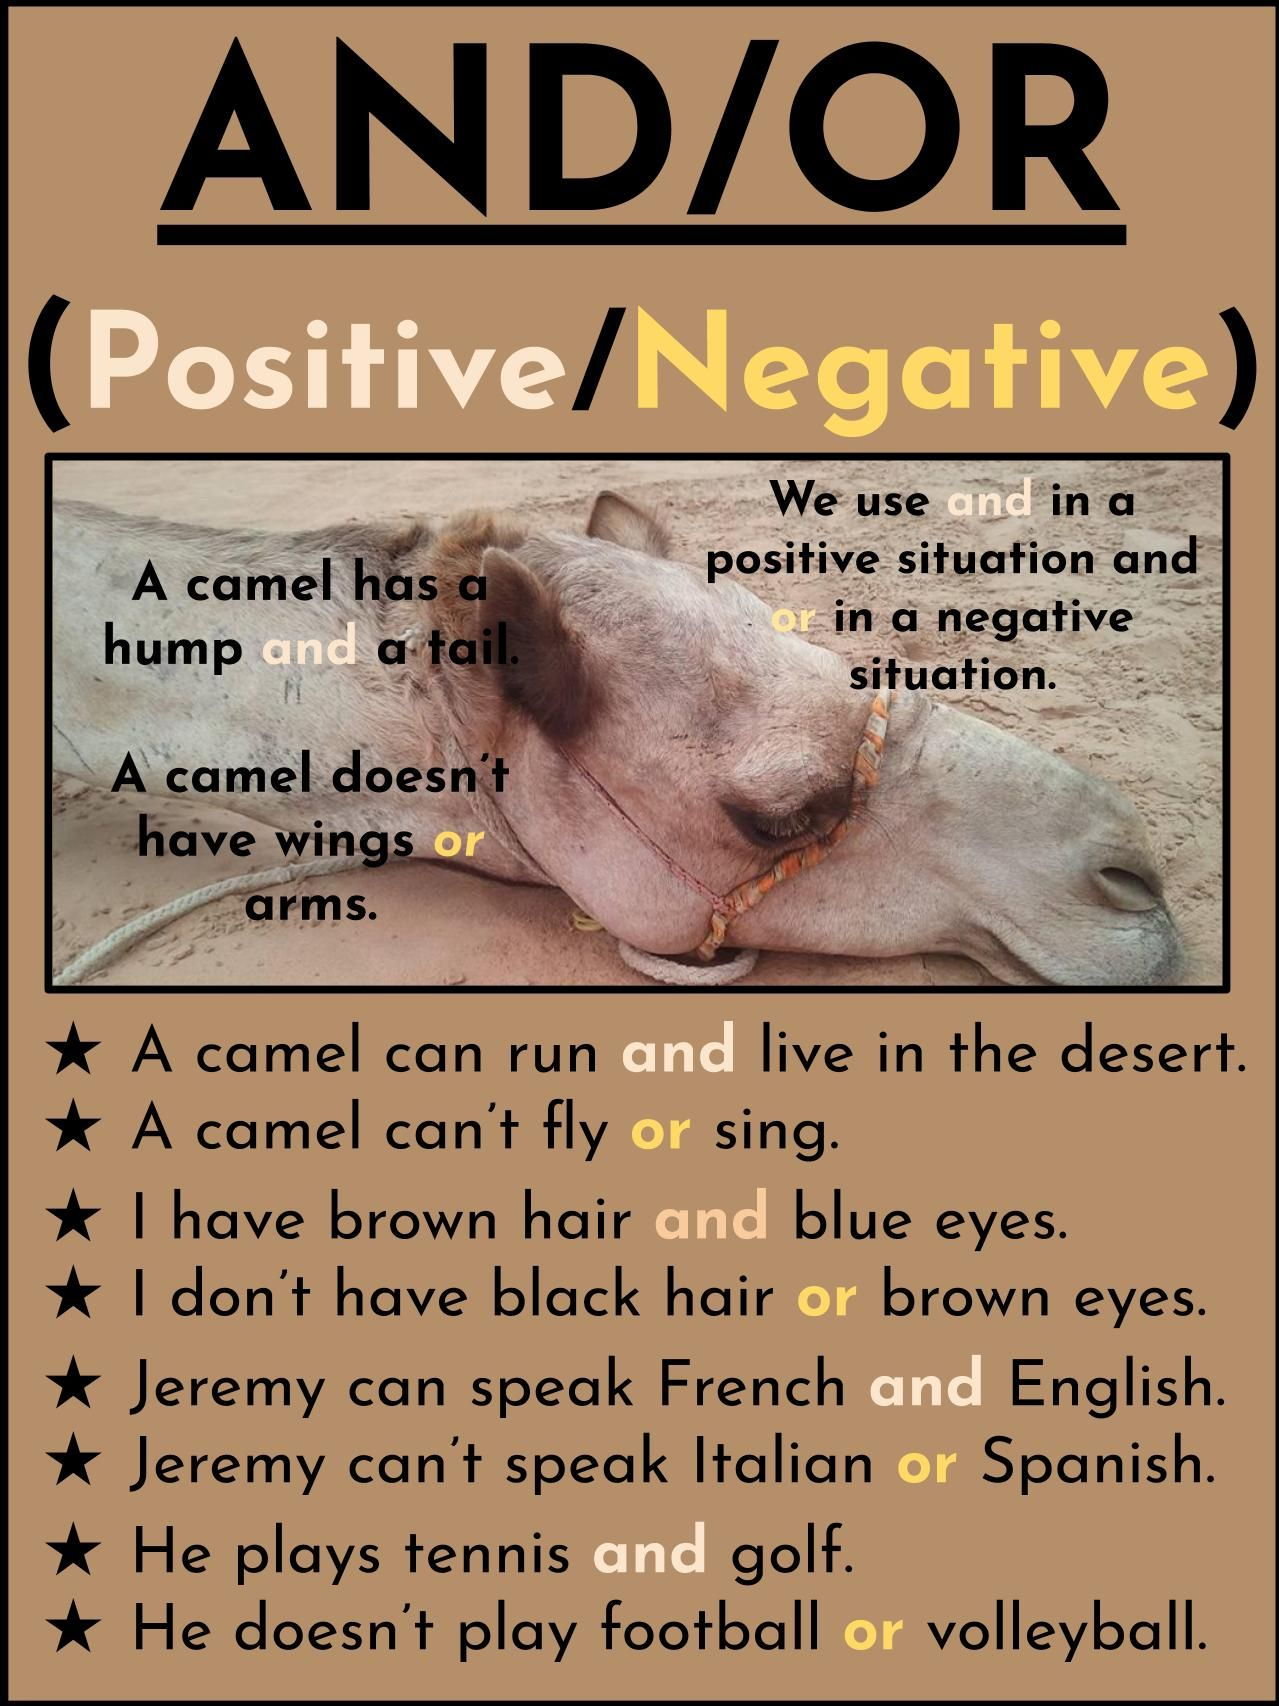 Tesol Grammar Slide To Help Leaners With Basics Of Positive And Negative Conjunctions Great In 2020 English Language Learning Learning Languages Learn English Grammar